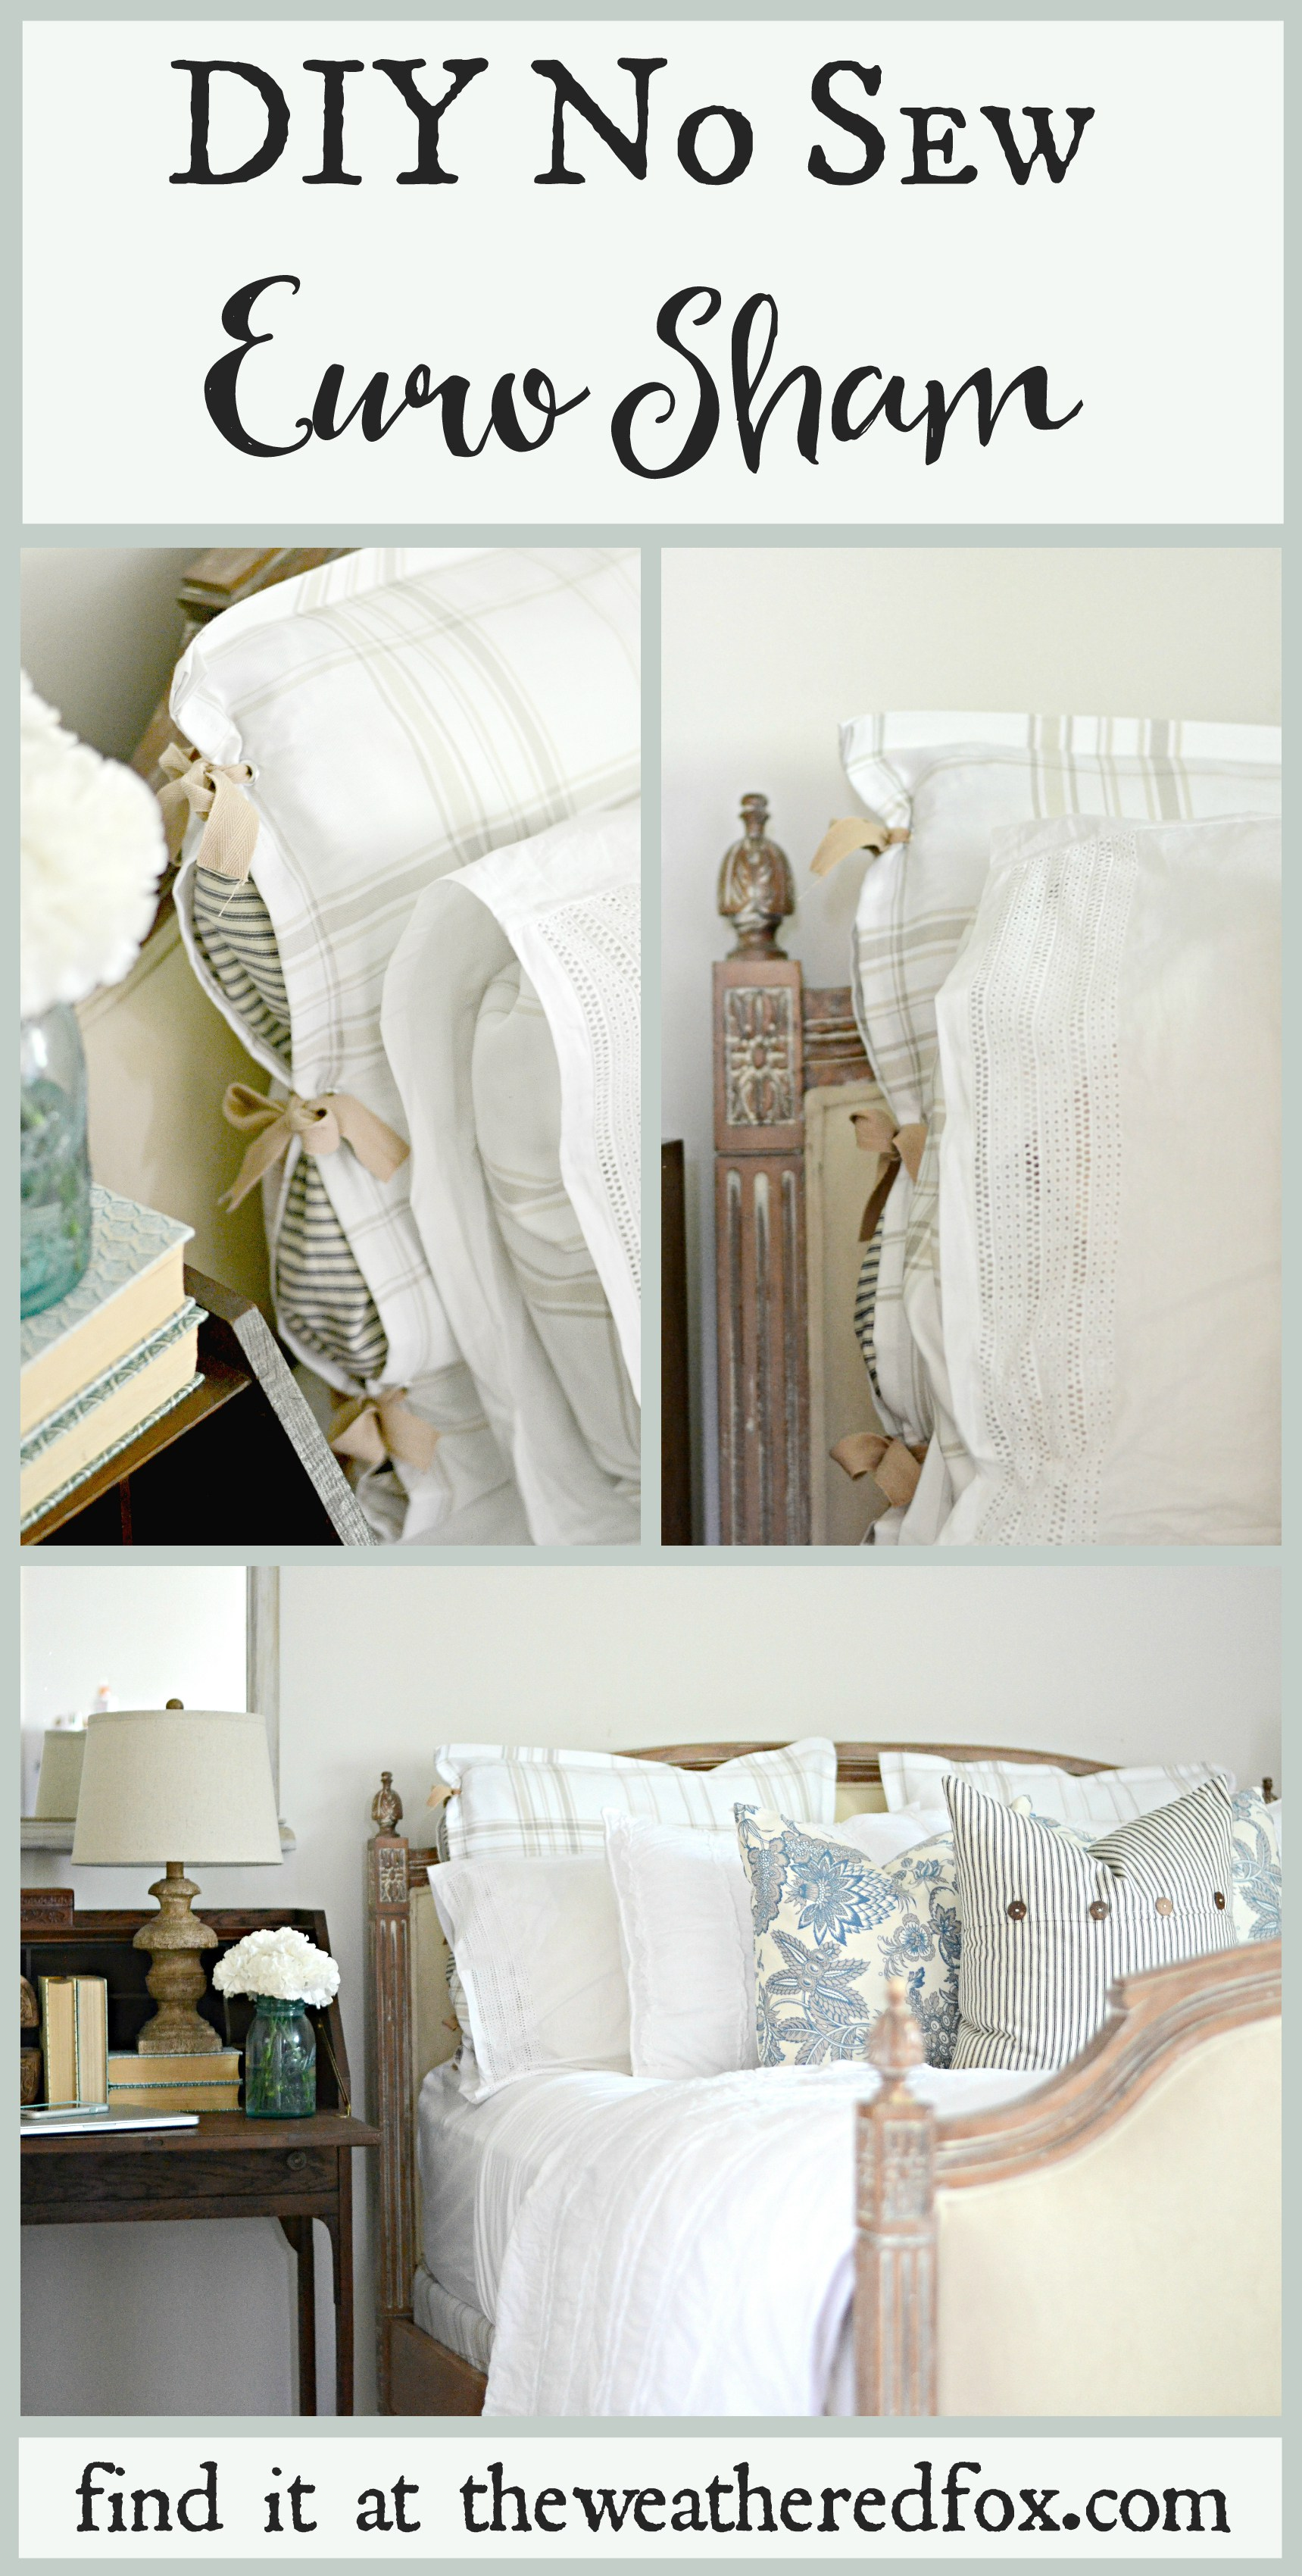 DIY-No-sew-Euro-Sham.-Make-your-own-euro-shams-for-10-or-less-and-NO-SEWING-required-Find-out-how-on-theweatheredfox.com_